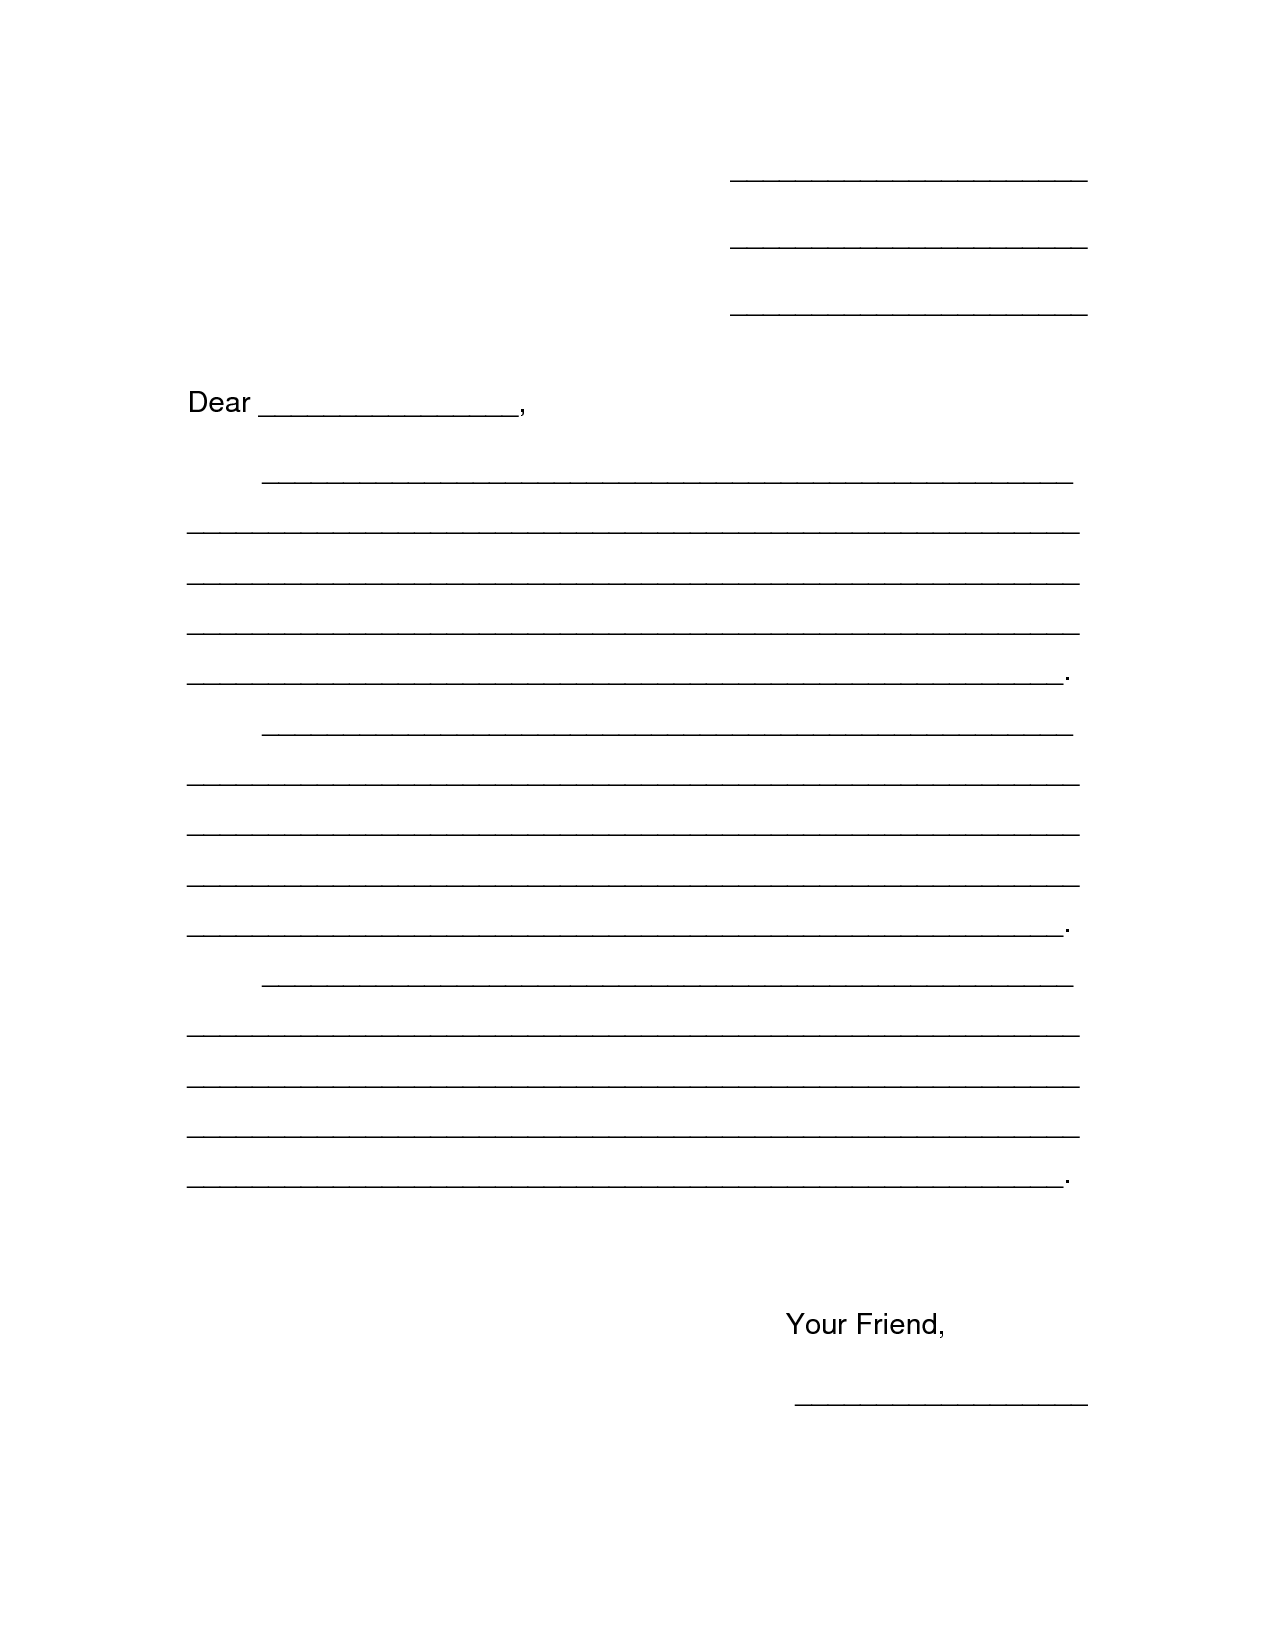 8a8e7563ffad1b8d5dcb8f0c4fa591df Free Blank Letter Templates on free blank thank you letters, free printable letterhead templates, free demand letter template, free form letter template, free letter of recommendation template, free printable stationery templates, free blank loan forms, free friendly letter template, free business letter template word, free printable christmas letter from santa, free blank labels, free blank loan agreements, blank forms templates, free booklet templates, free alphabet templates, free character letter template, printable alphabet letters templates, letter-writing stationery templates, free professional business letter template, free blank letters from santa,